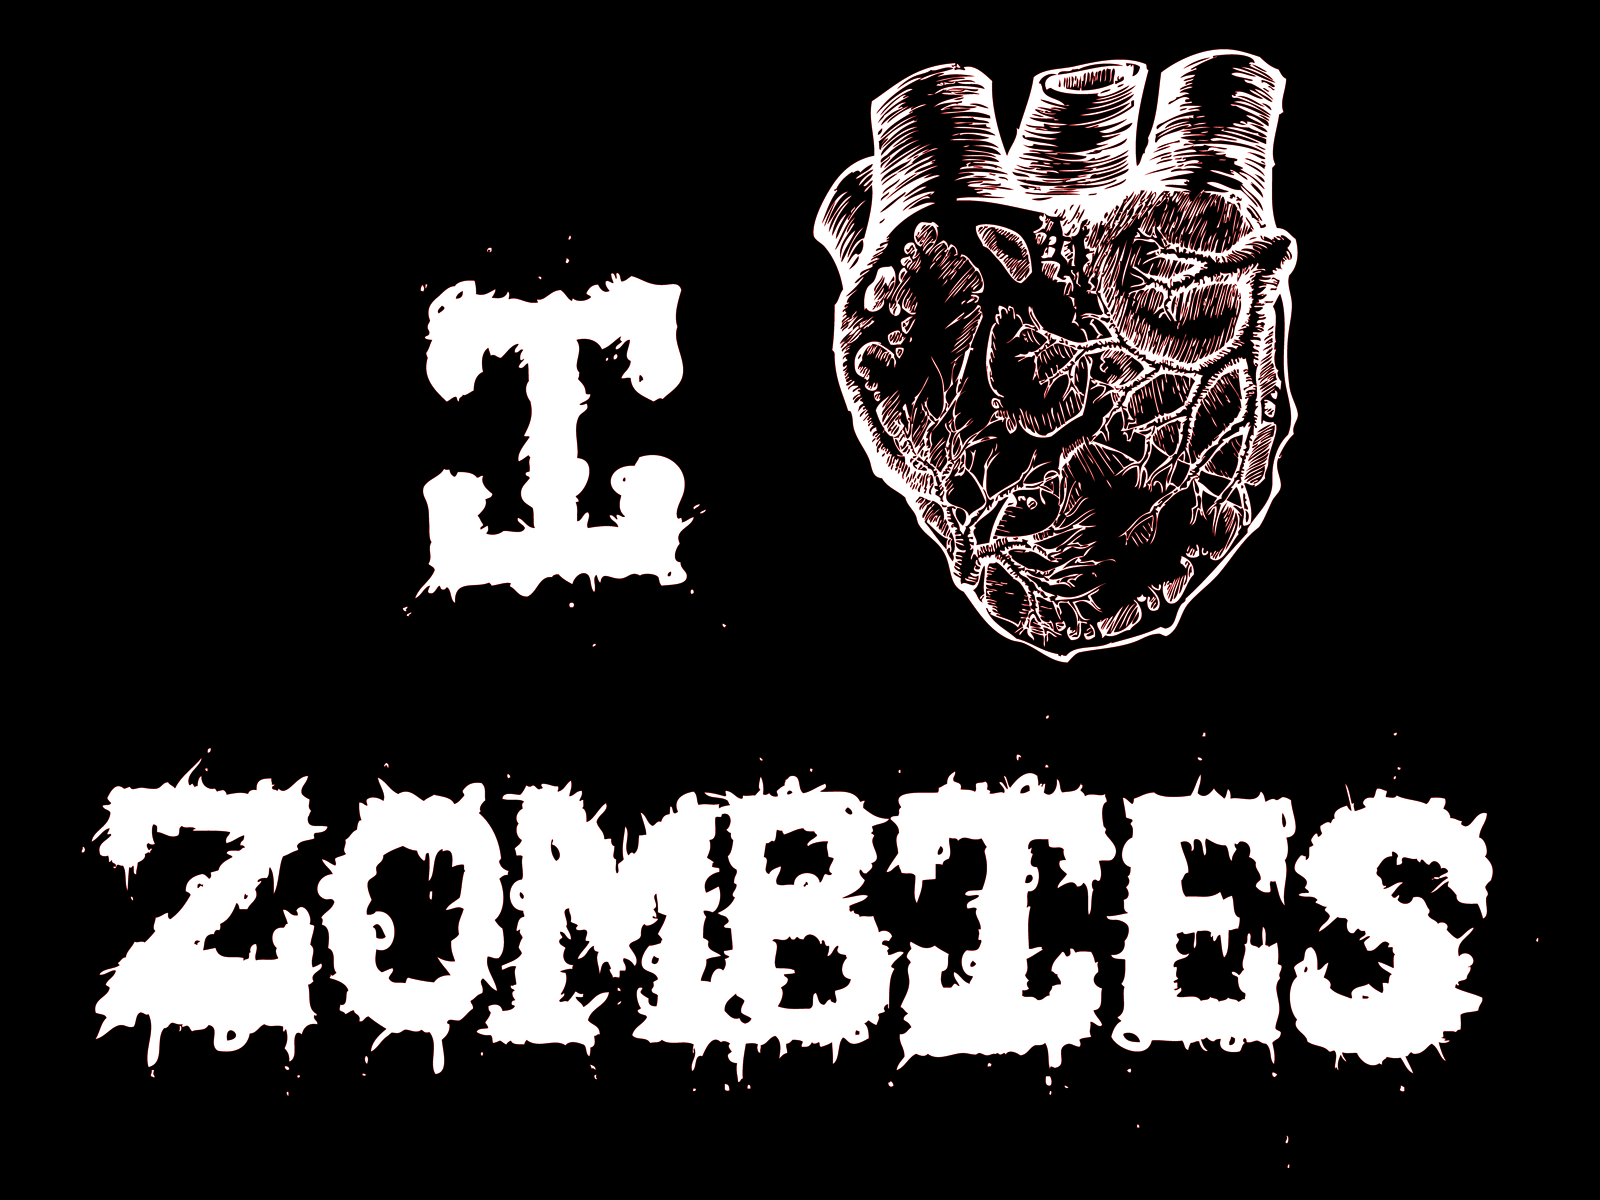 zombie wallpaper HD scary and horror scenery Scary 1600x1200